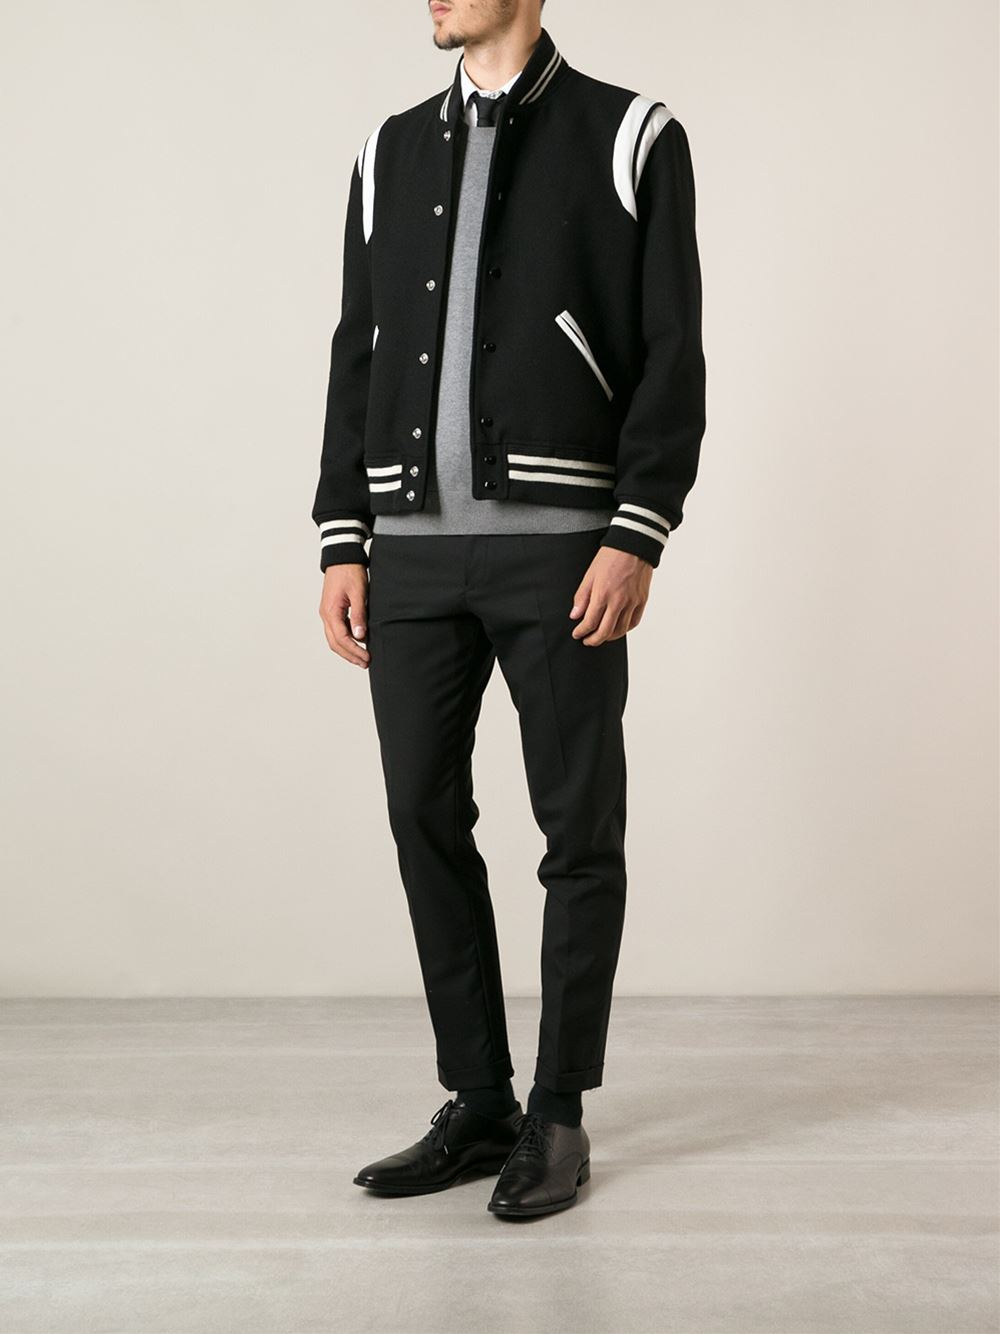 Lyst Saint Laurent Teddy Jacket In Black For Men